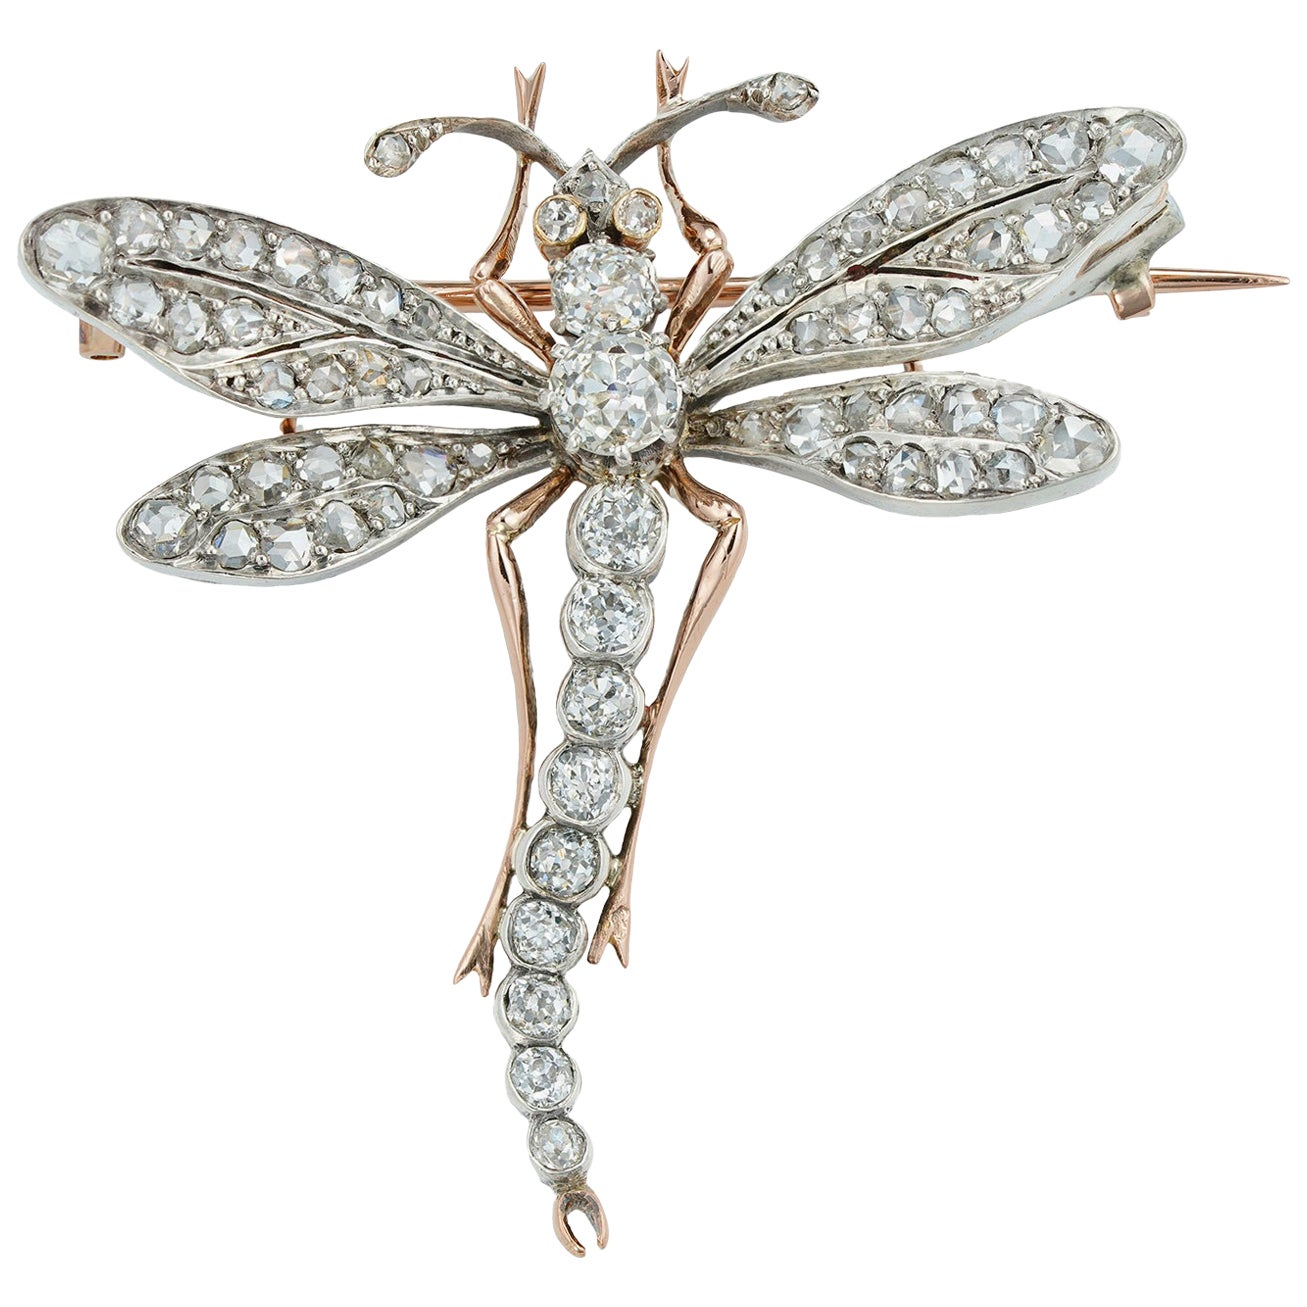 Belle Epoque Diamond-Set Dragonfly Brooch